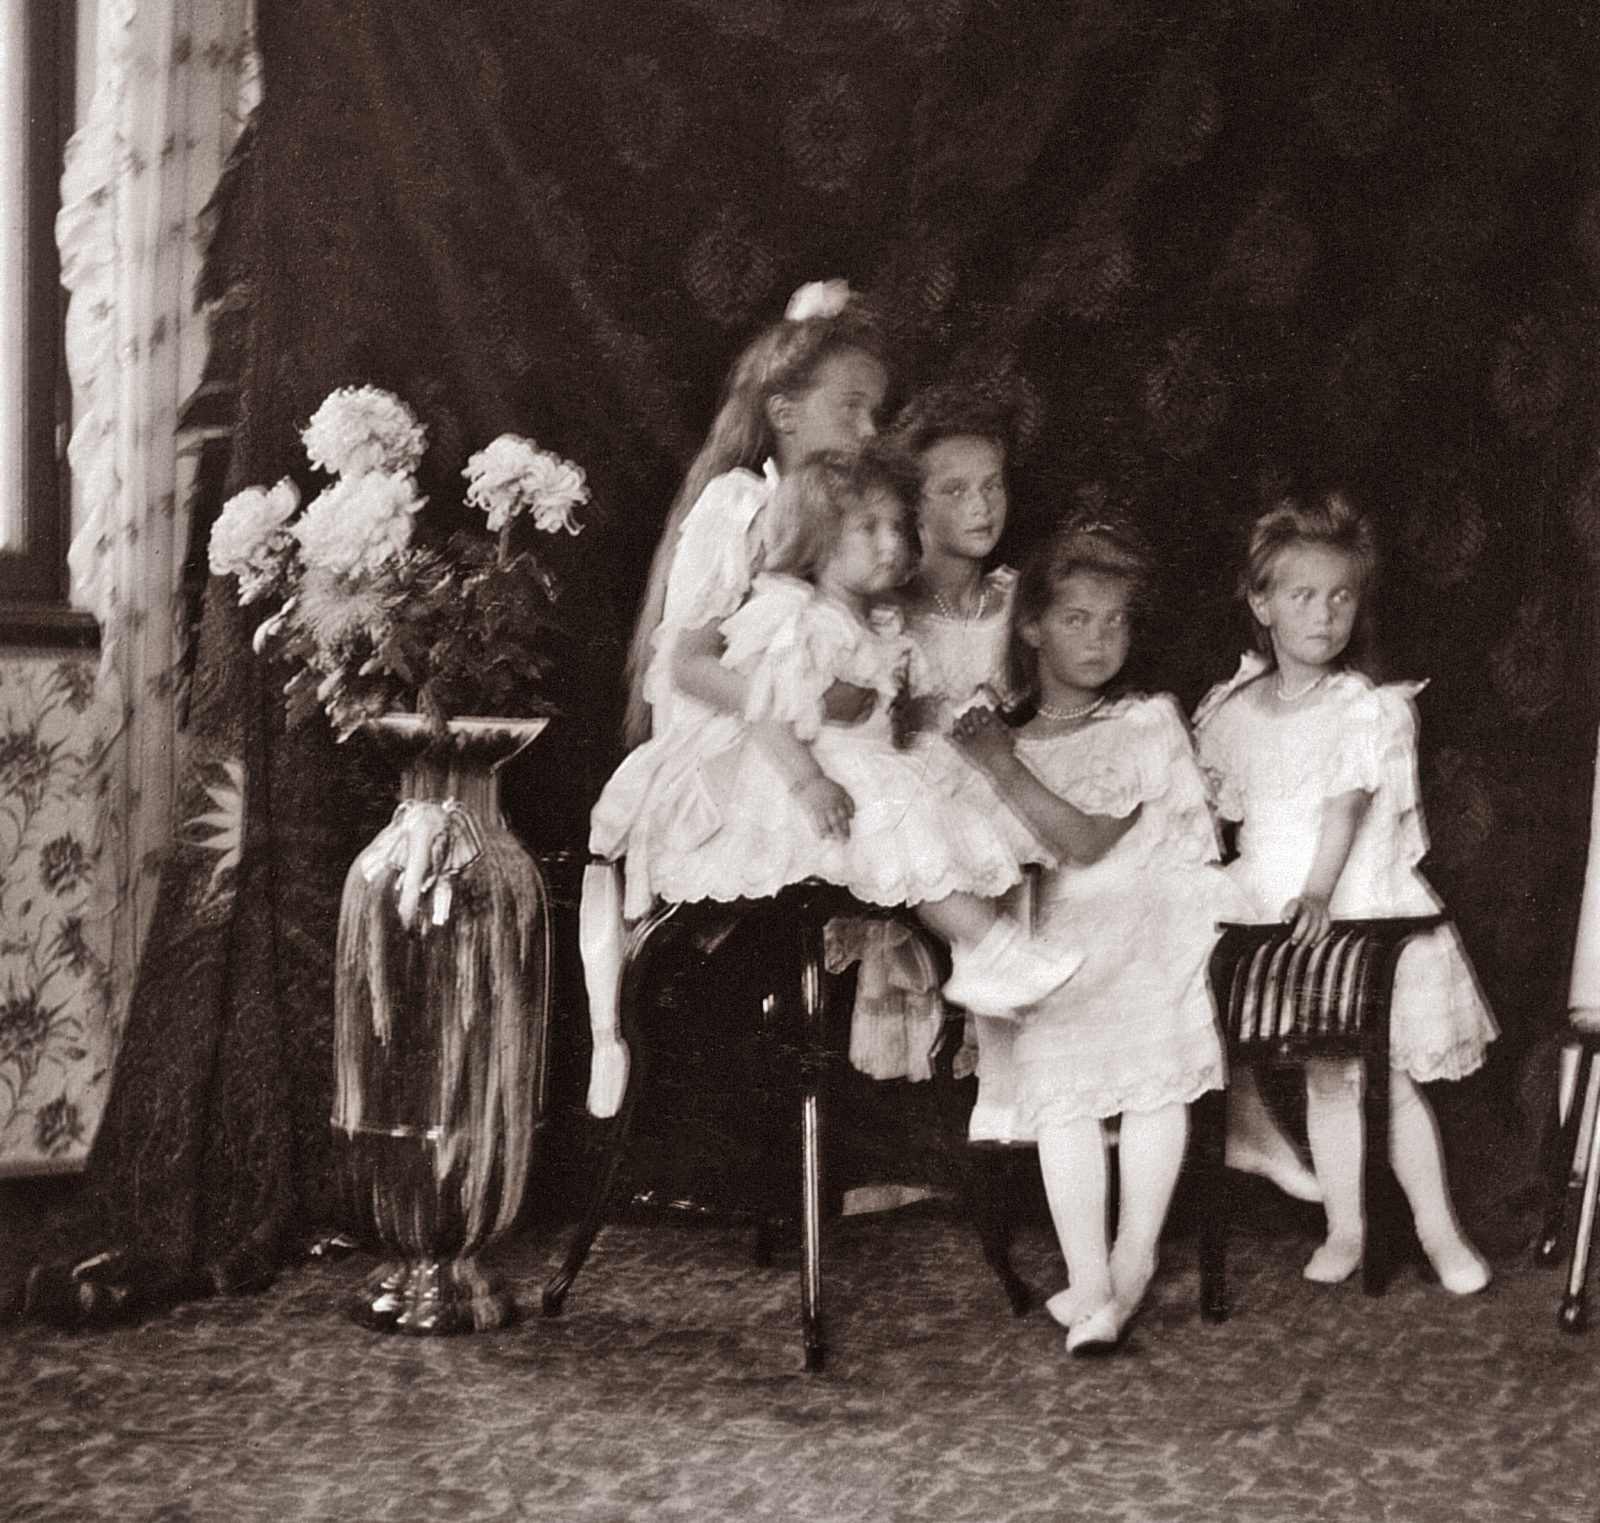 Tsesarevich Alexei Nikolayevich and the Grand Princesses Olga, Tatiana, Maria, Anastasia.